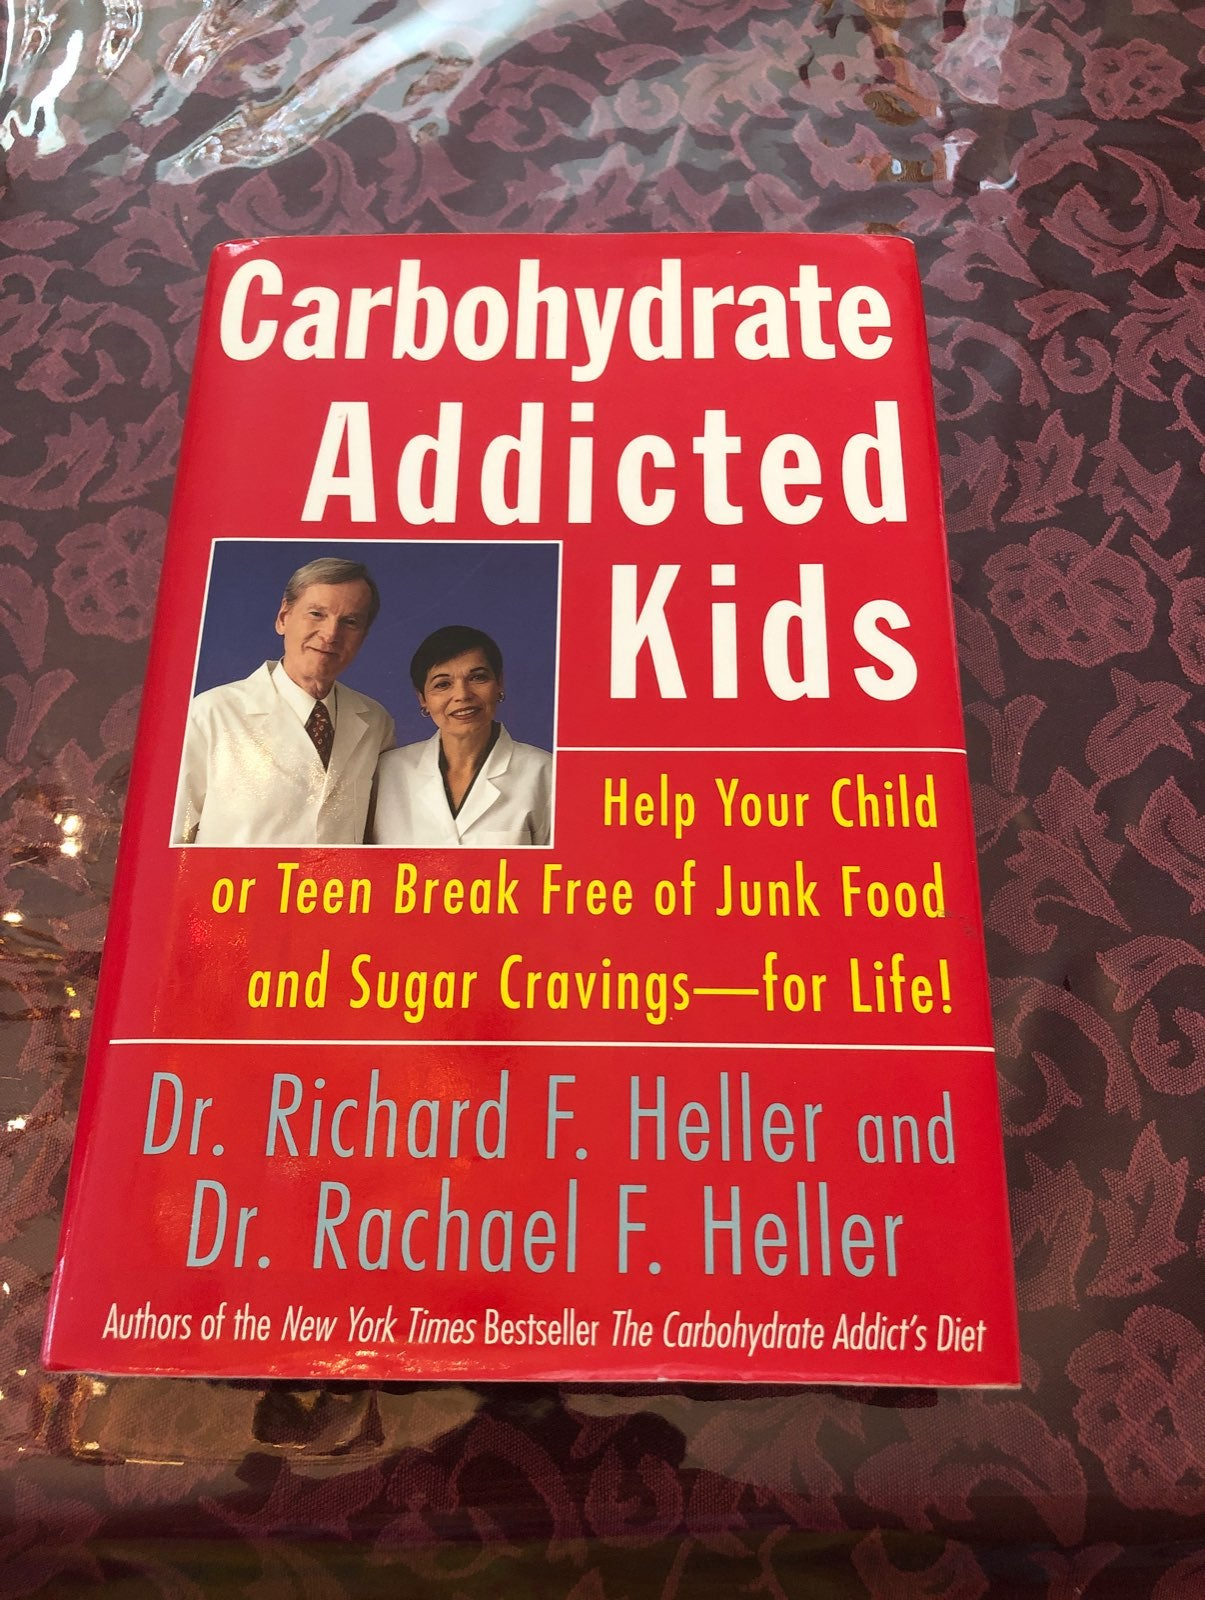 Carbohydrate addicted kids book